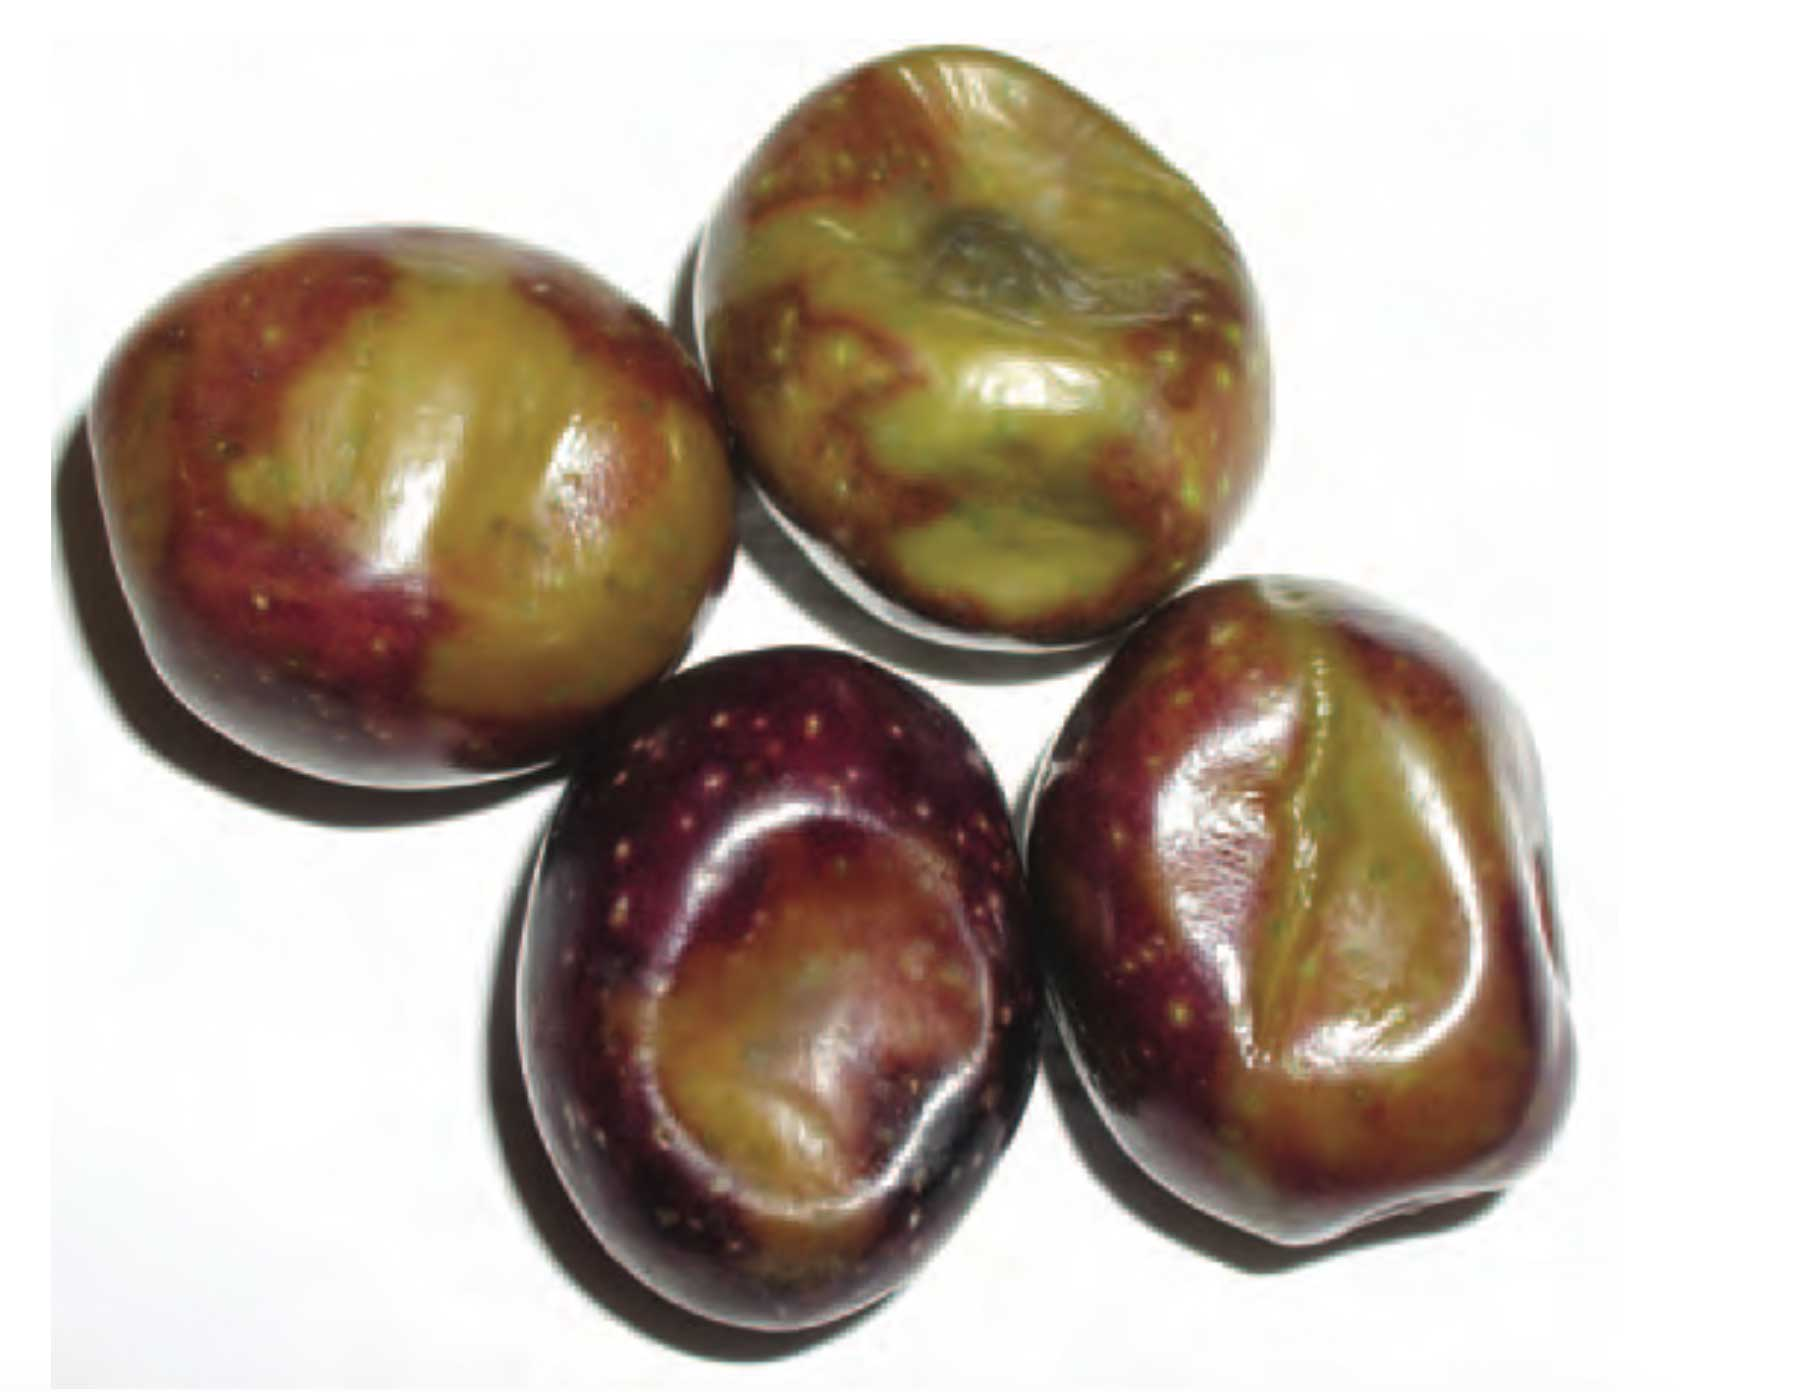 Frost and chilling injuries in olives